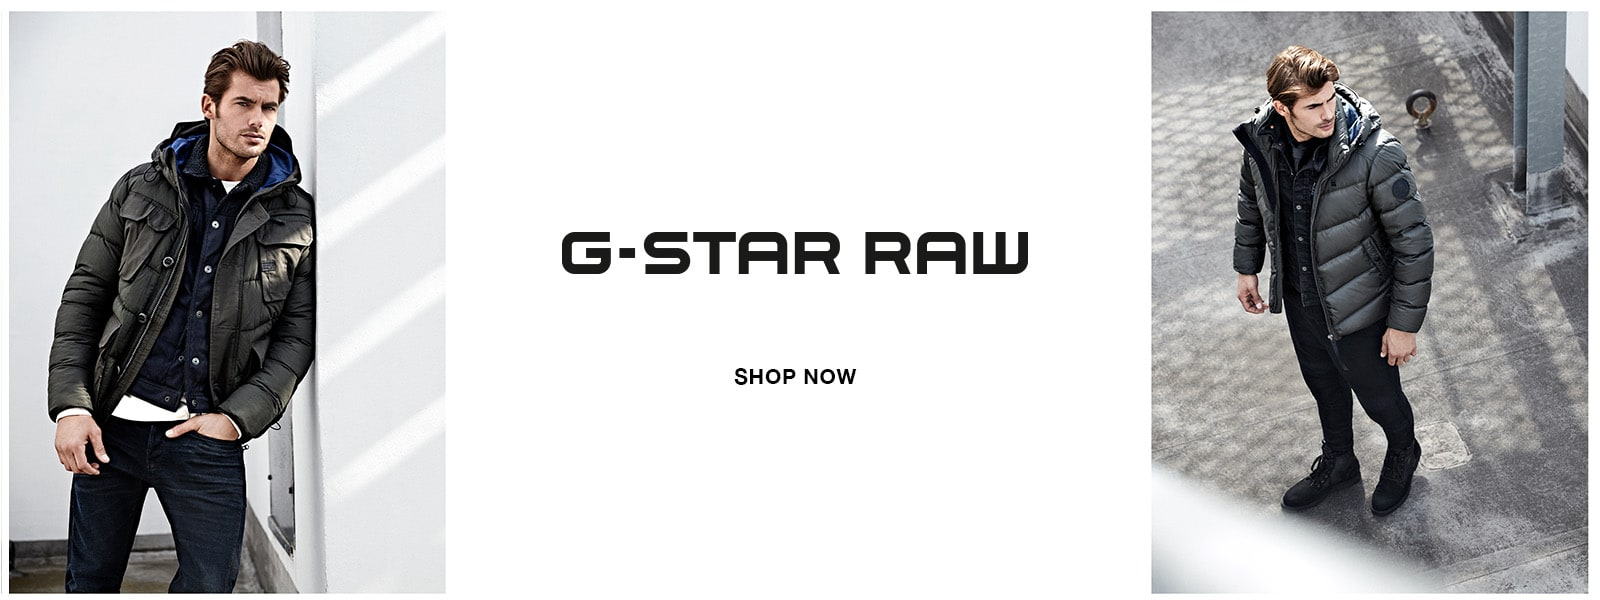 G-Star Raw - Autumn Winter 19 Collection